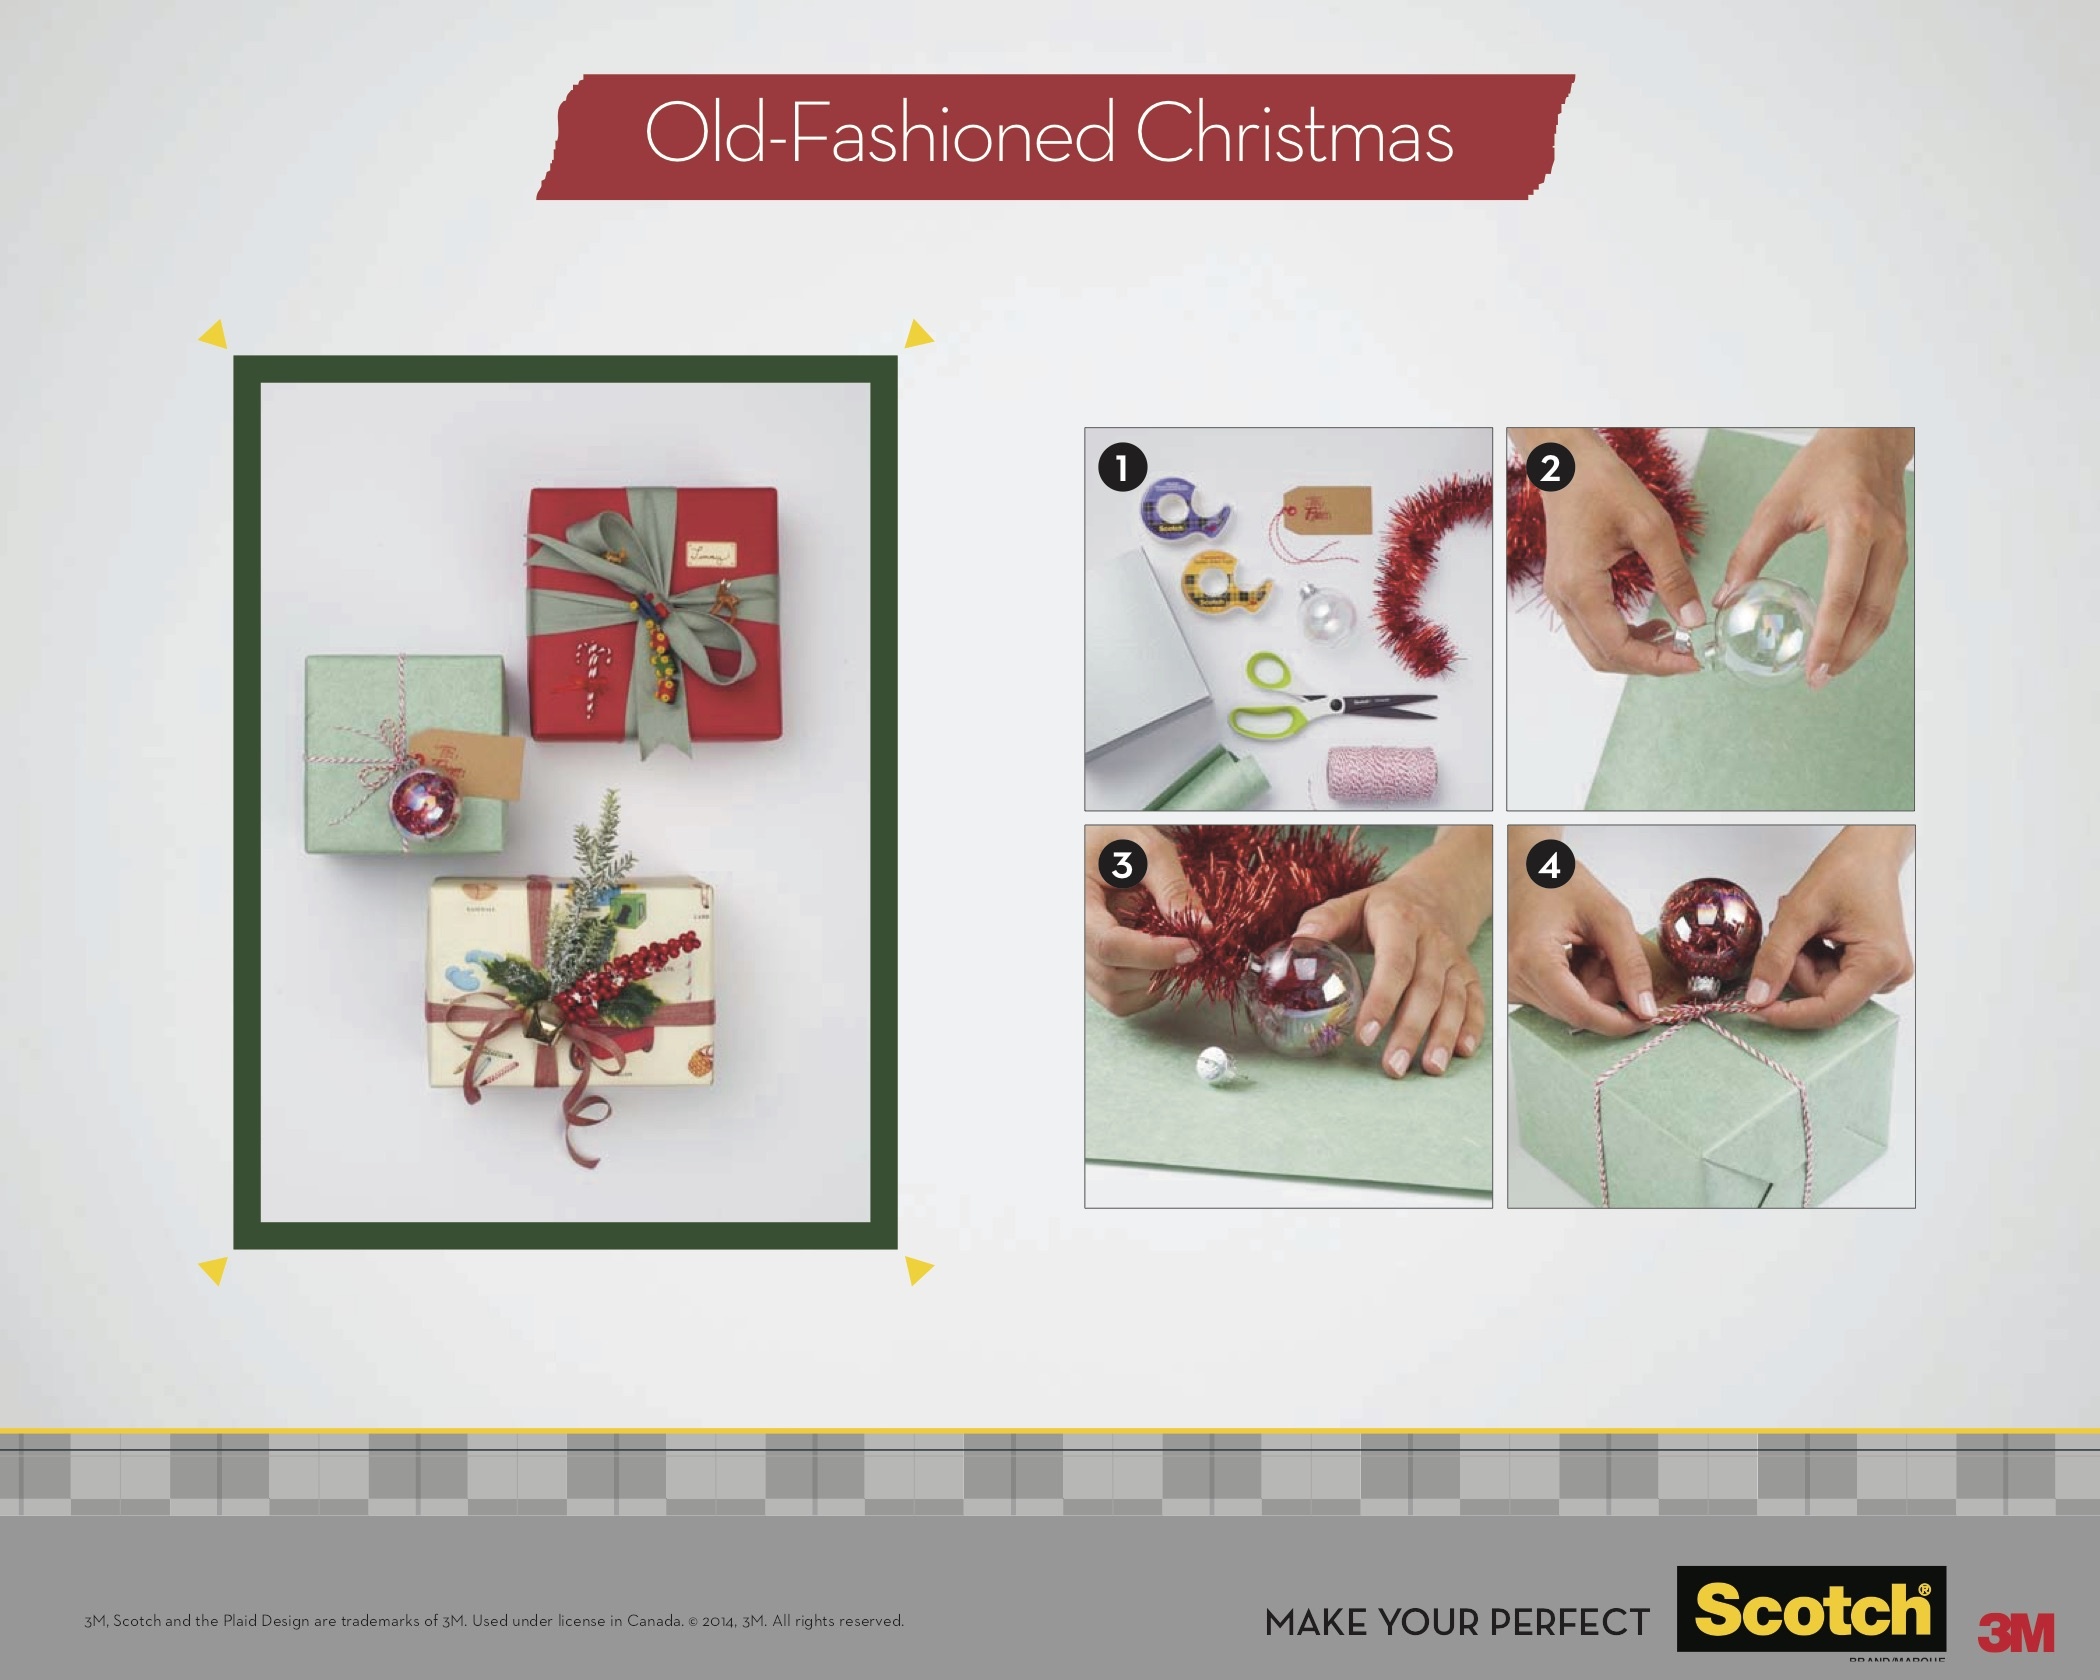 Scotch Brand Canada 2014 Holiday Gift Trends